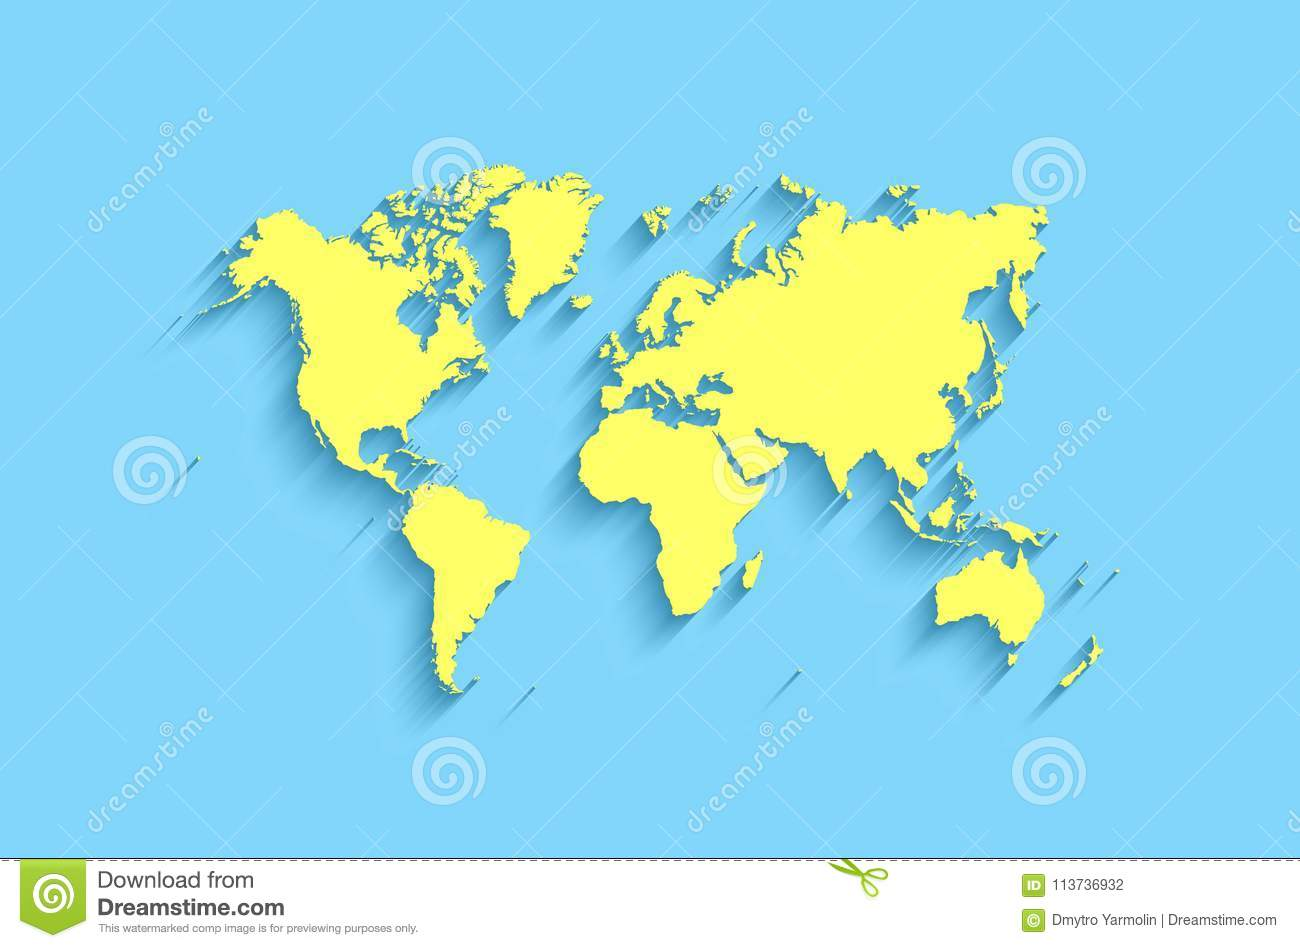 Flat world map abstract background for wallpaper stock illustration download flat world map abstract background for wallpaper stock illustration illustration of africa gumiabroncs Gallery